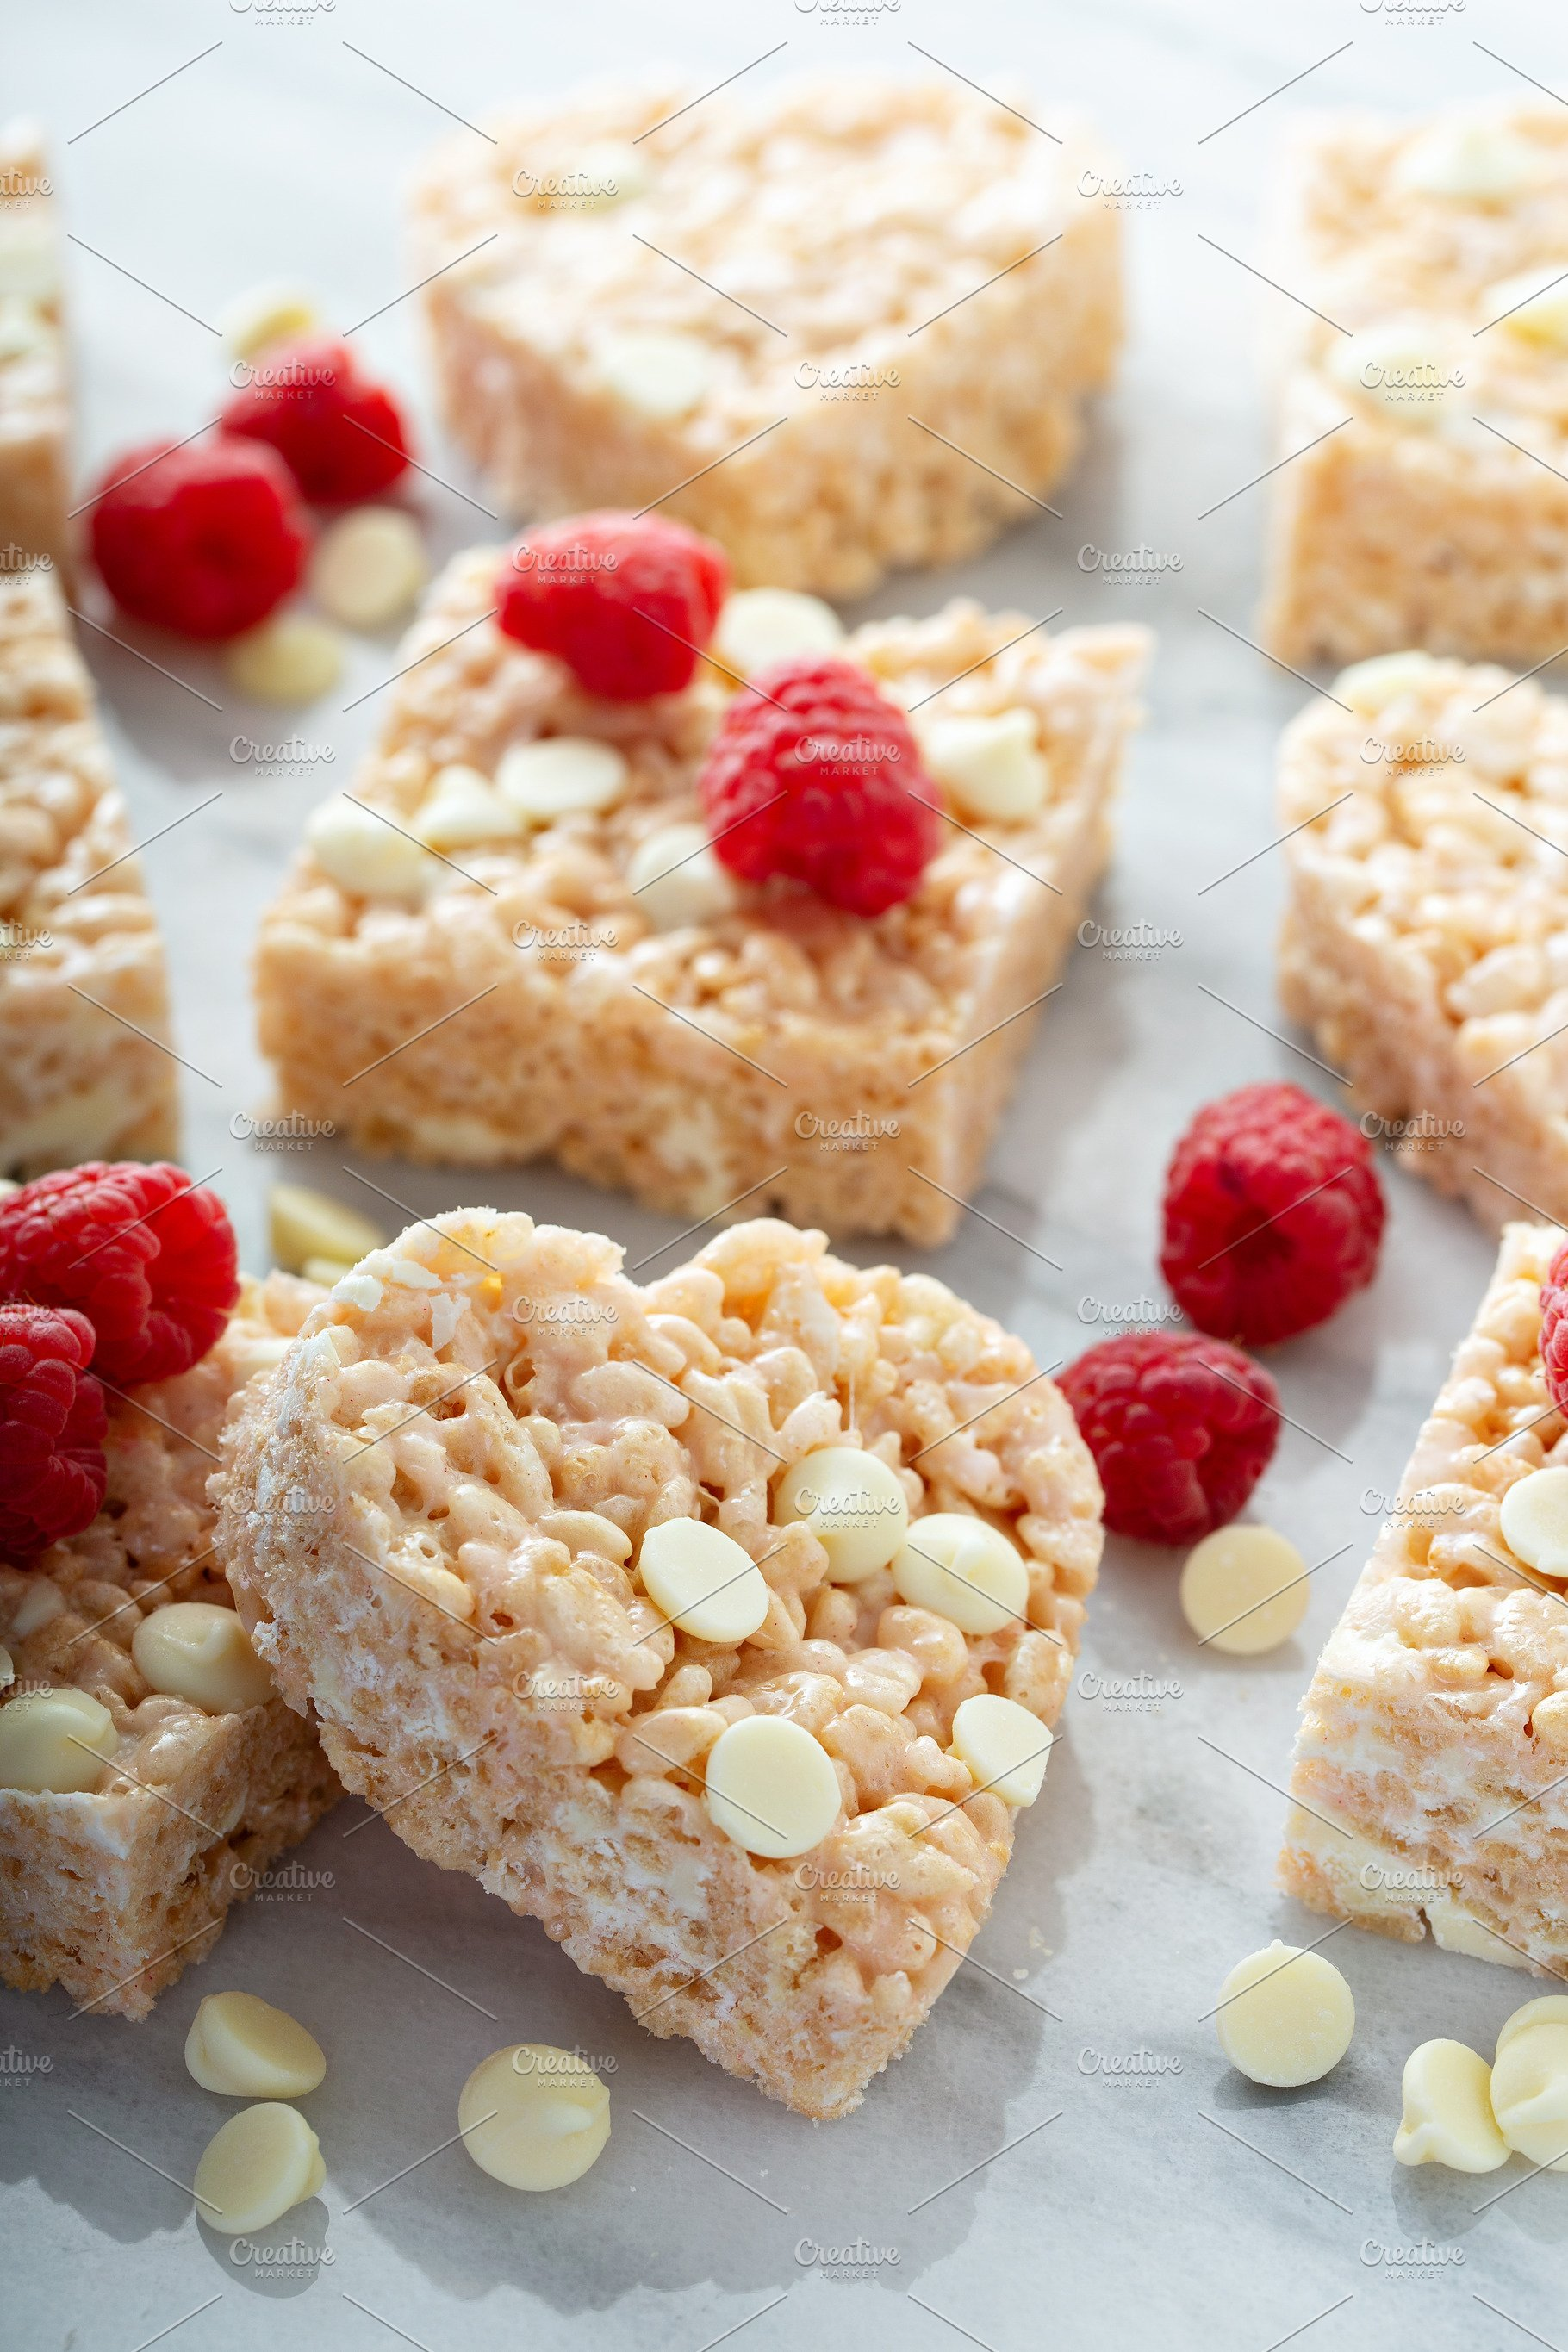 Heart And Square Shaped Rice Crispy High Quality Food Images